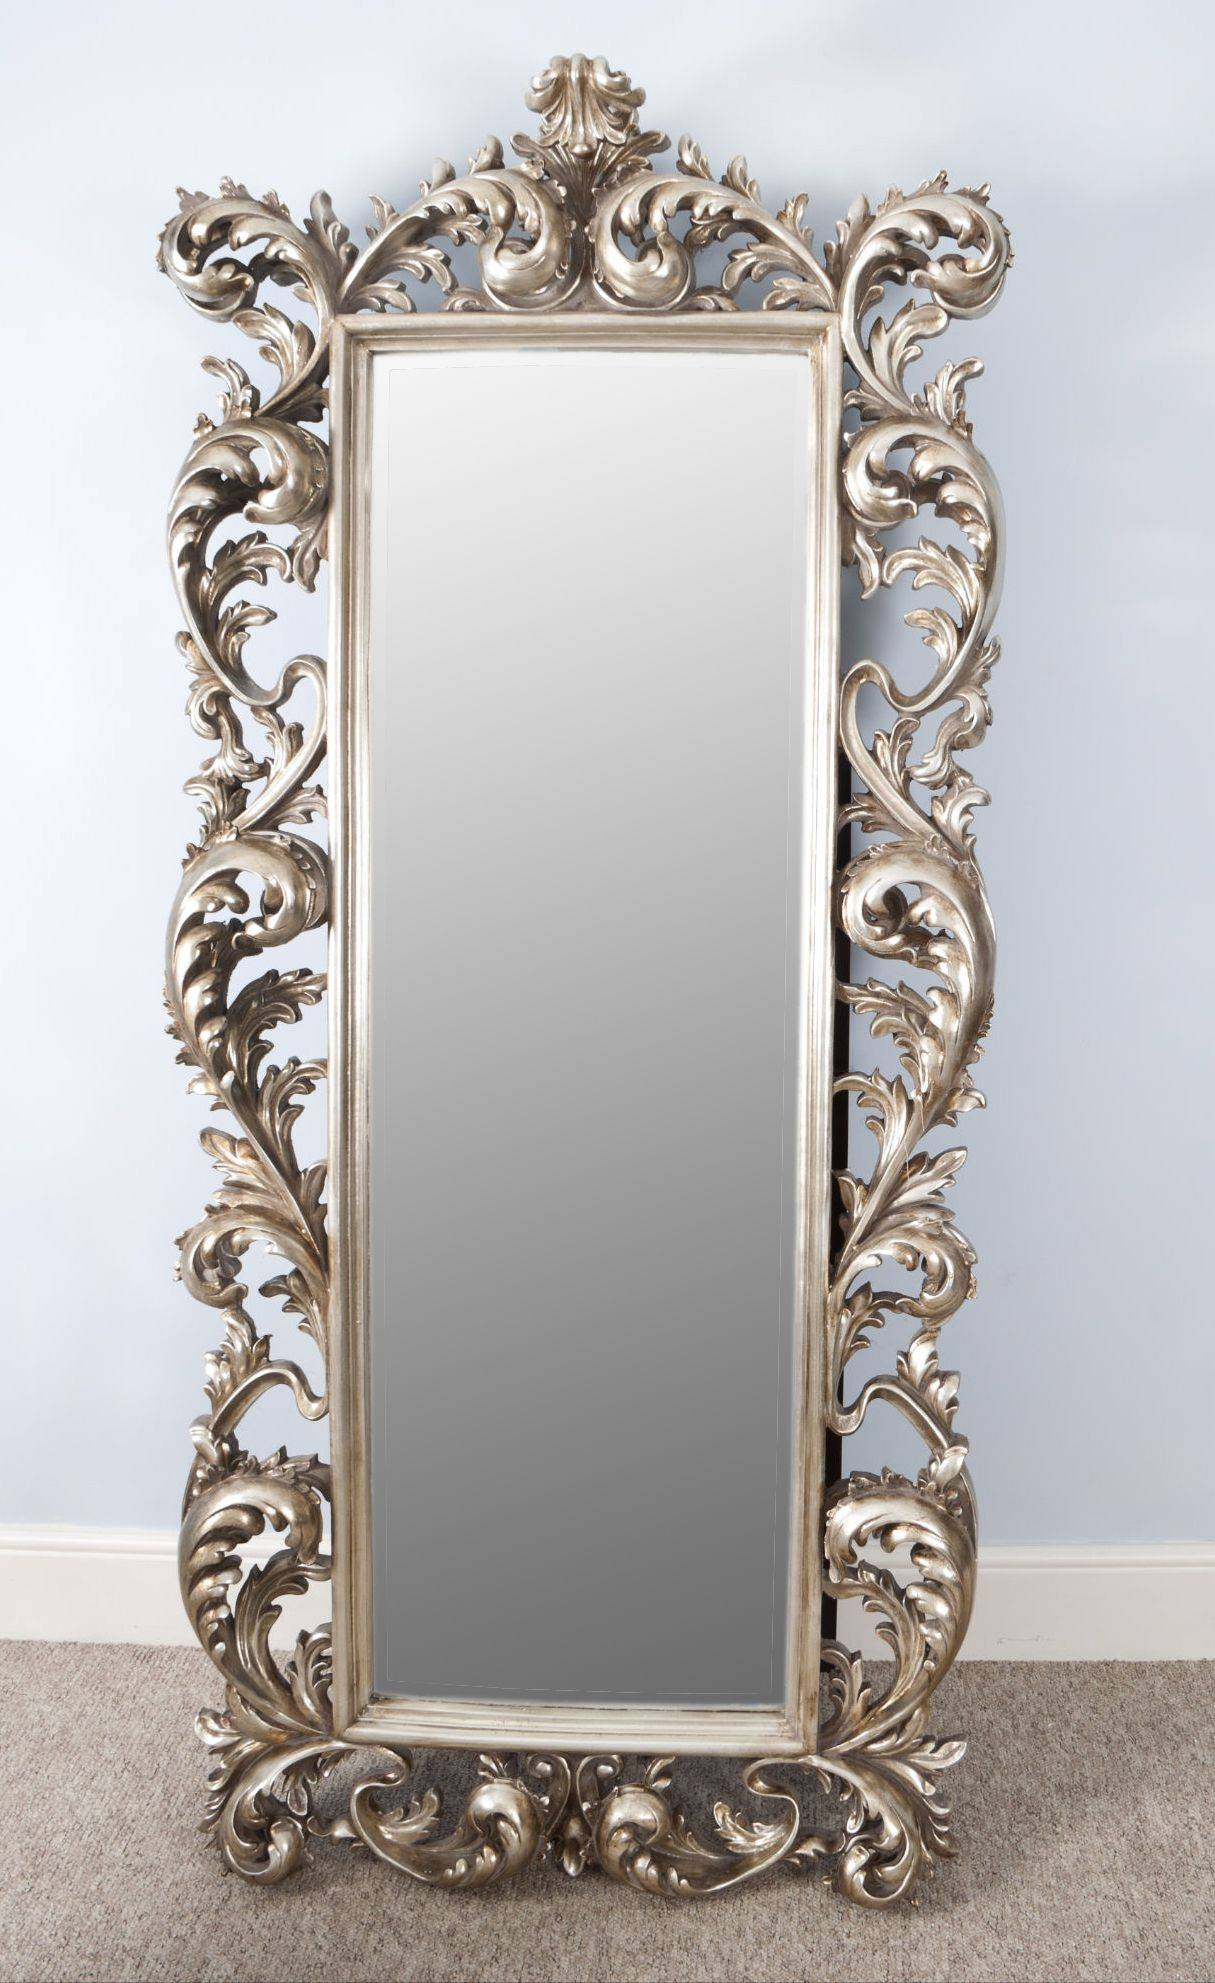 4 Tips In Choosing Antique Wall Mirrors | Holoduke intended for Antique Wall Mirrors (Image 1 of 15)